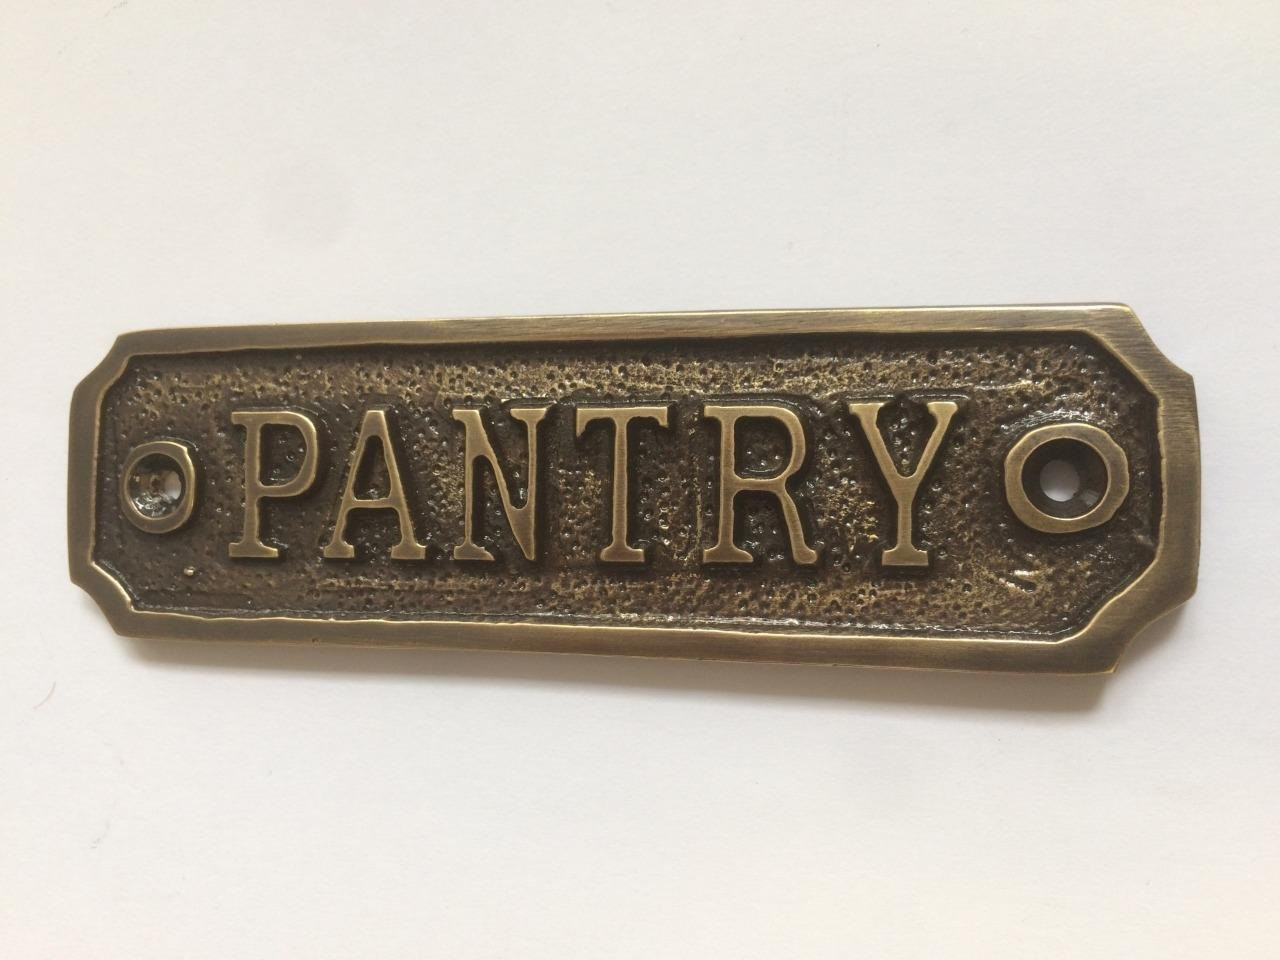 Chattels PANTRY Door Sign Solid Brass with a Antique Bronze Finish 10.5 x 3cm comes with Screws DSN-14-AB KBIJ